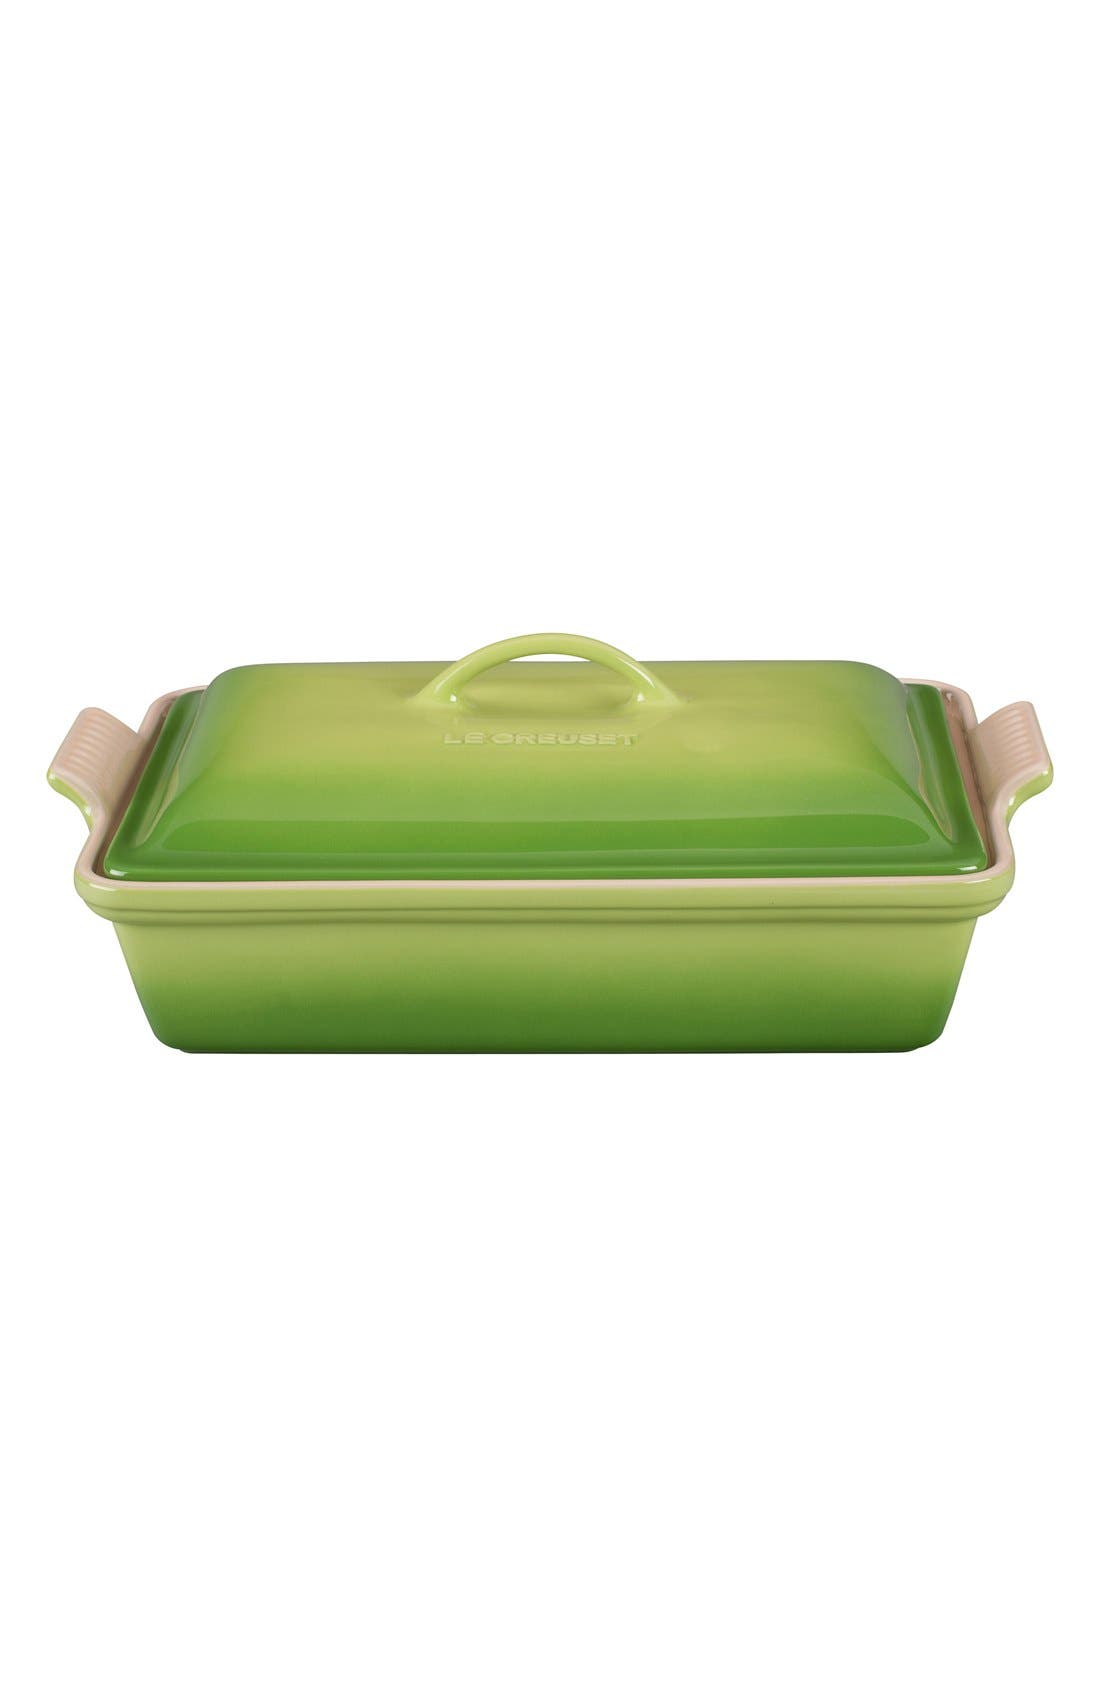 Alternate Image 1 Selected - Le Creuset 4 Quart Covered Rectangular Stoneware Casserole